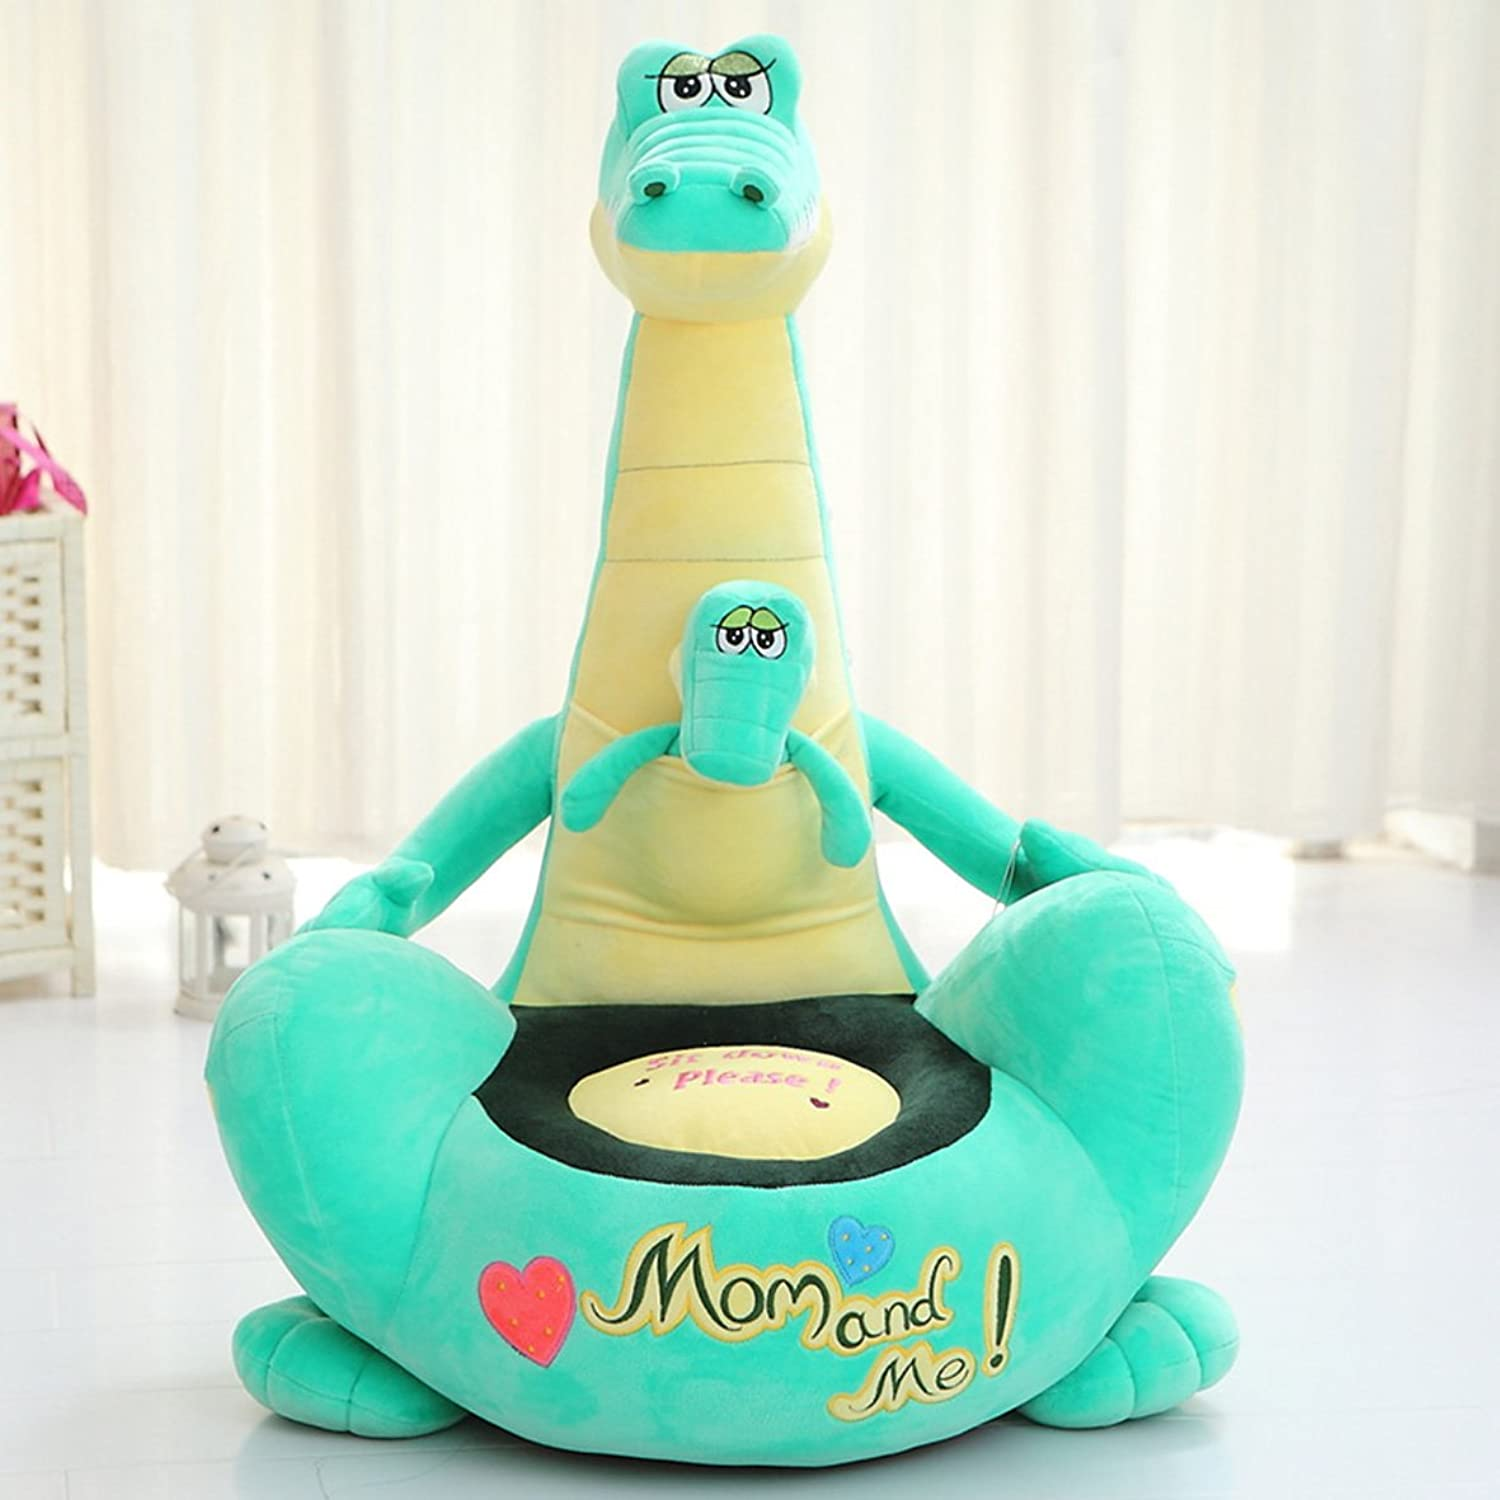 MAXYOYO Soft Velvet Mom and Me Cartoon Dinosaur Washable Kid Bean Bag Sofa Chair Plush,Mom and Me Dinosaur Plush Toy Sofa for Boys and Girls